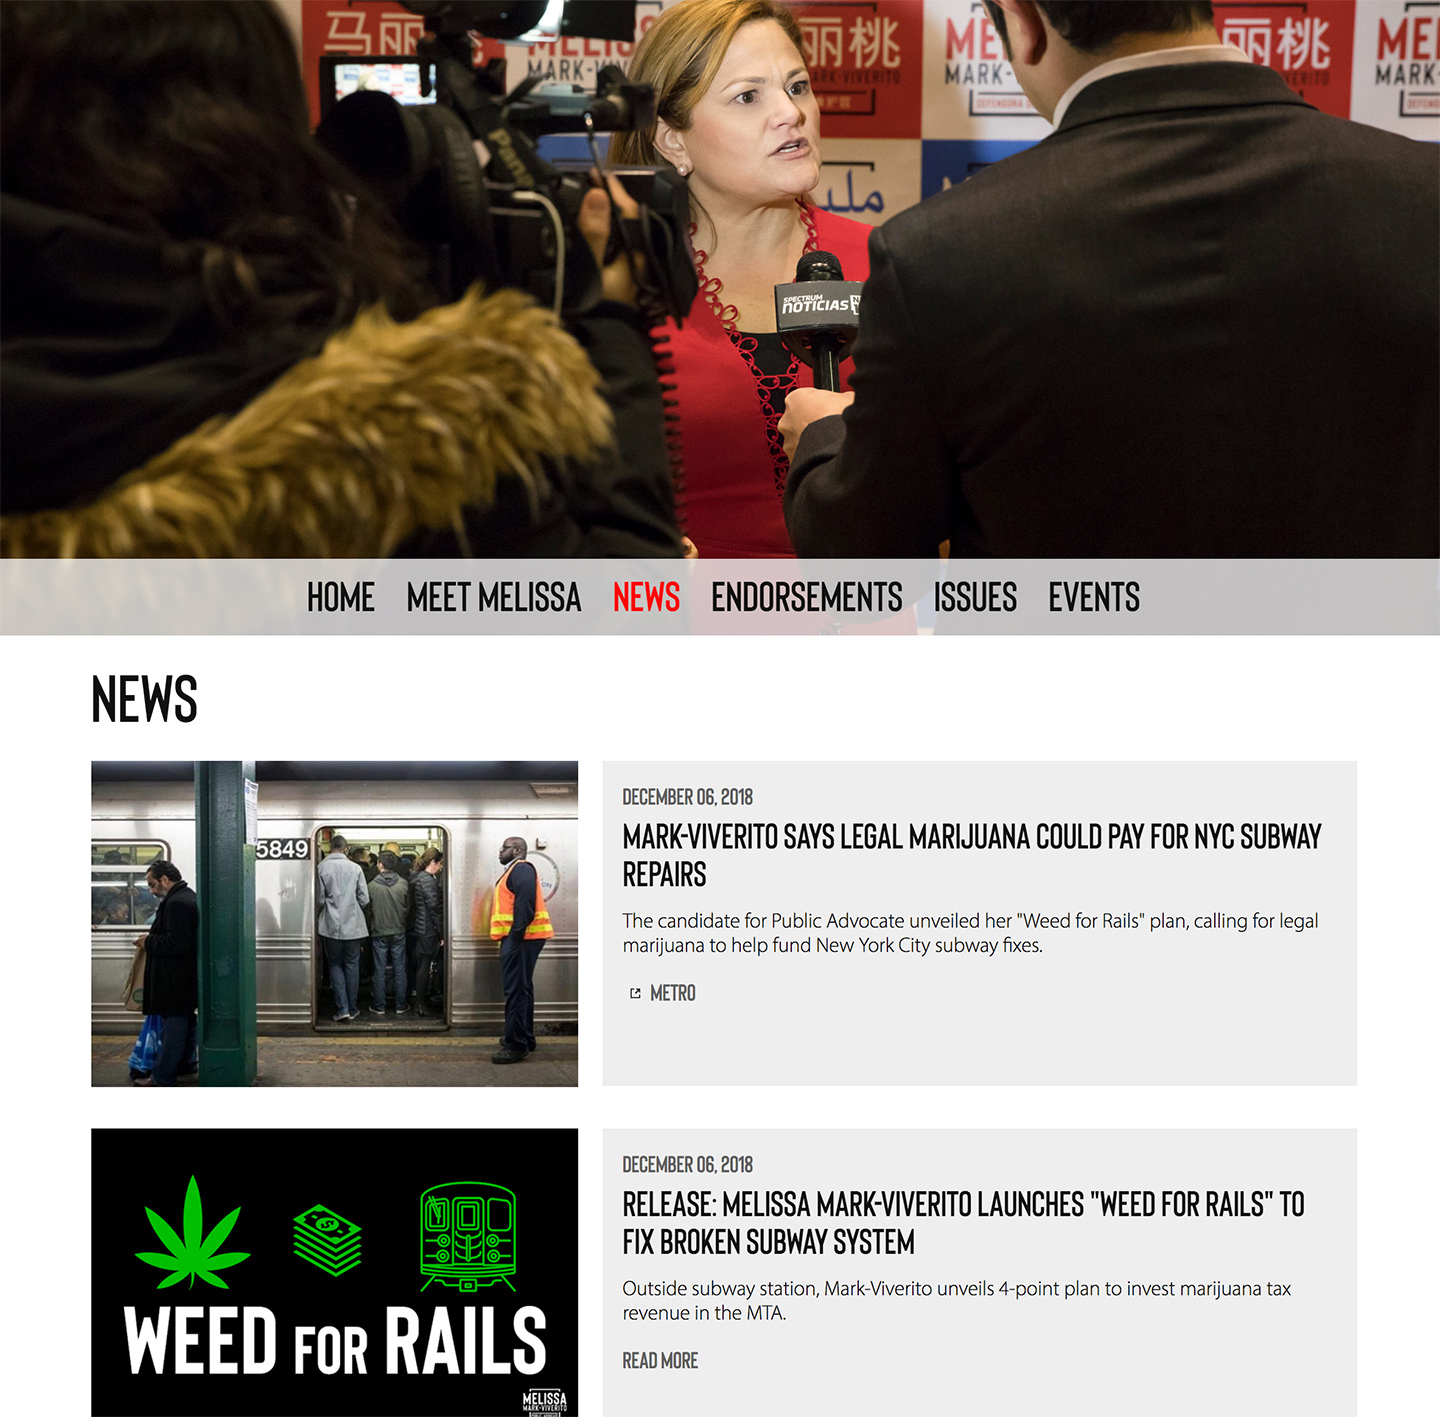 Melissa Mark-Viverito for Public Advocate: Automated News Feed